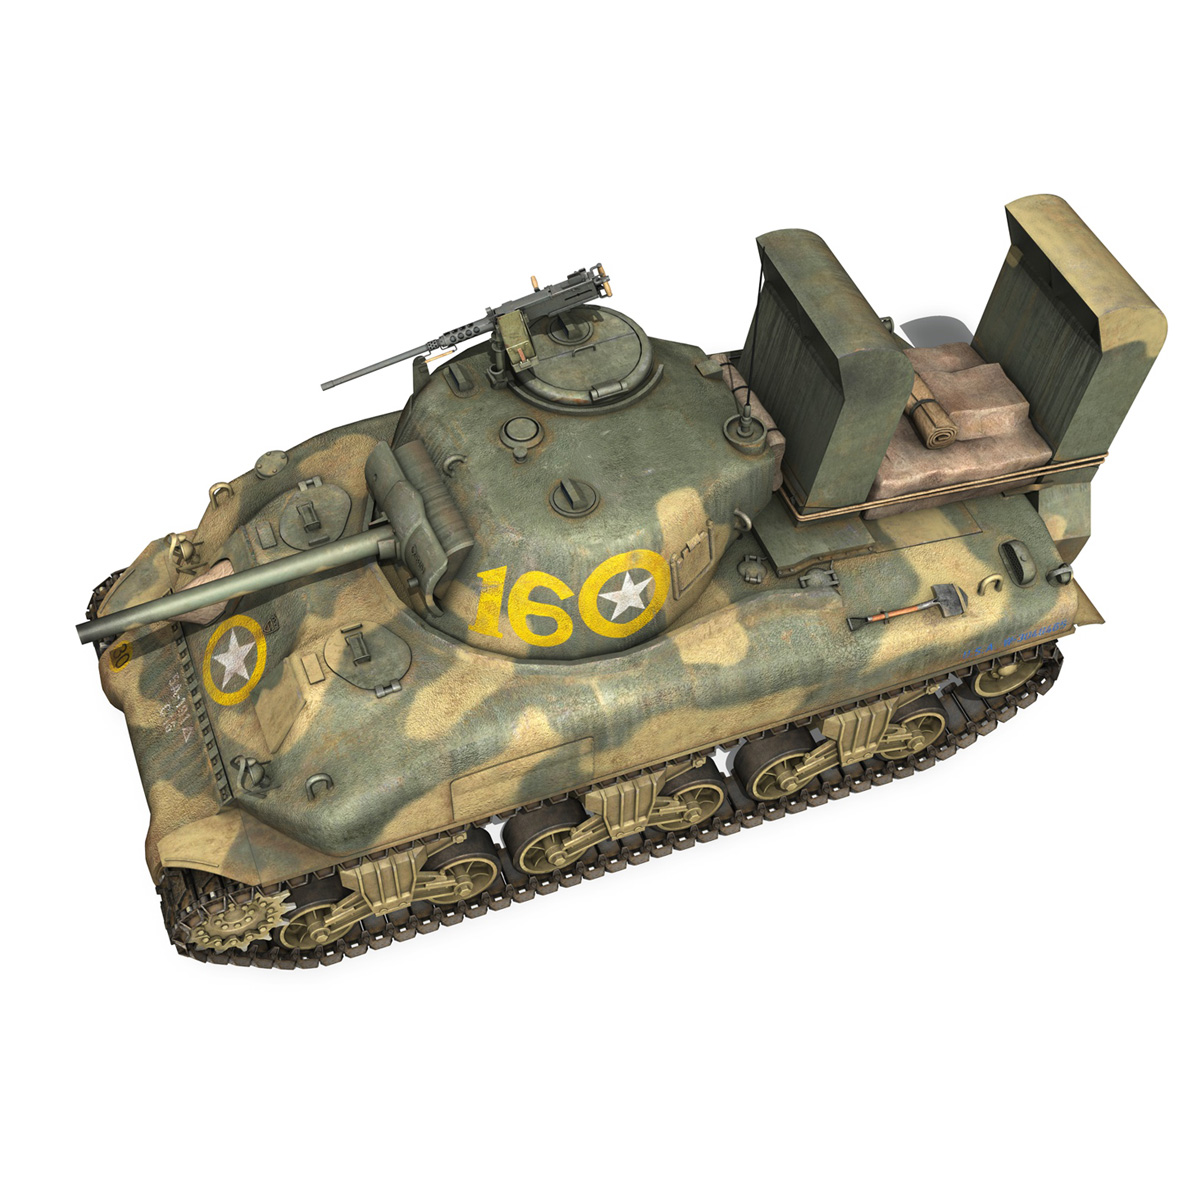 m4a1 sherman – 16 3d model 3ds fbx c4d lwo obj 273058